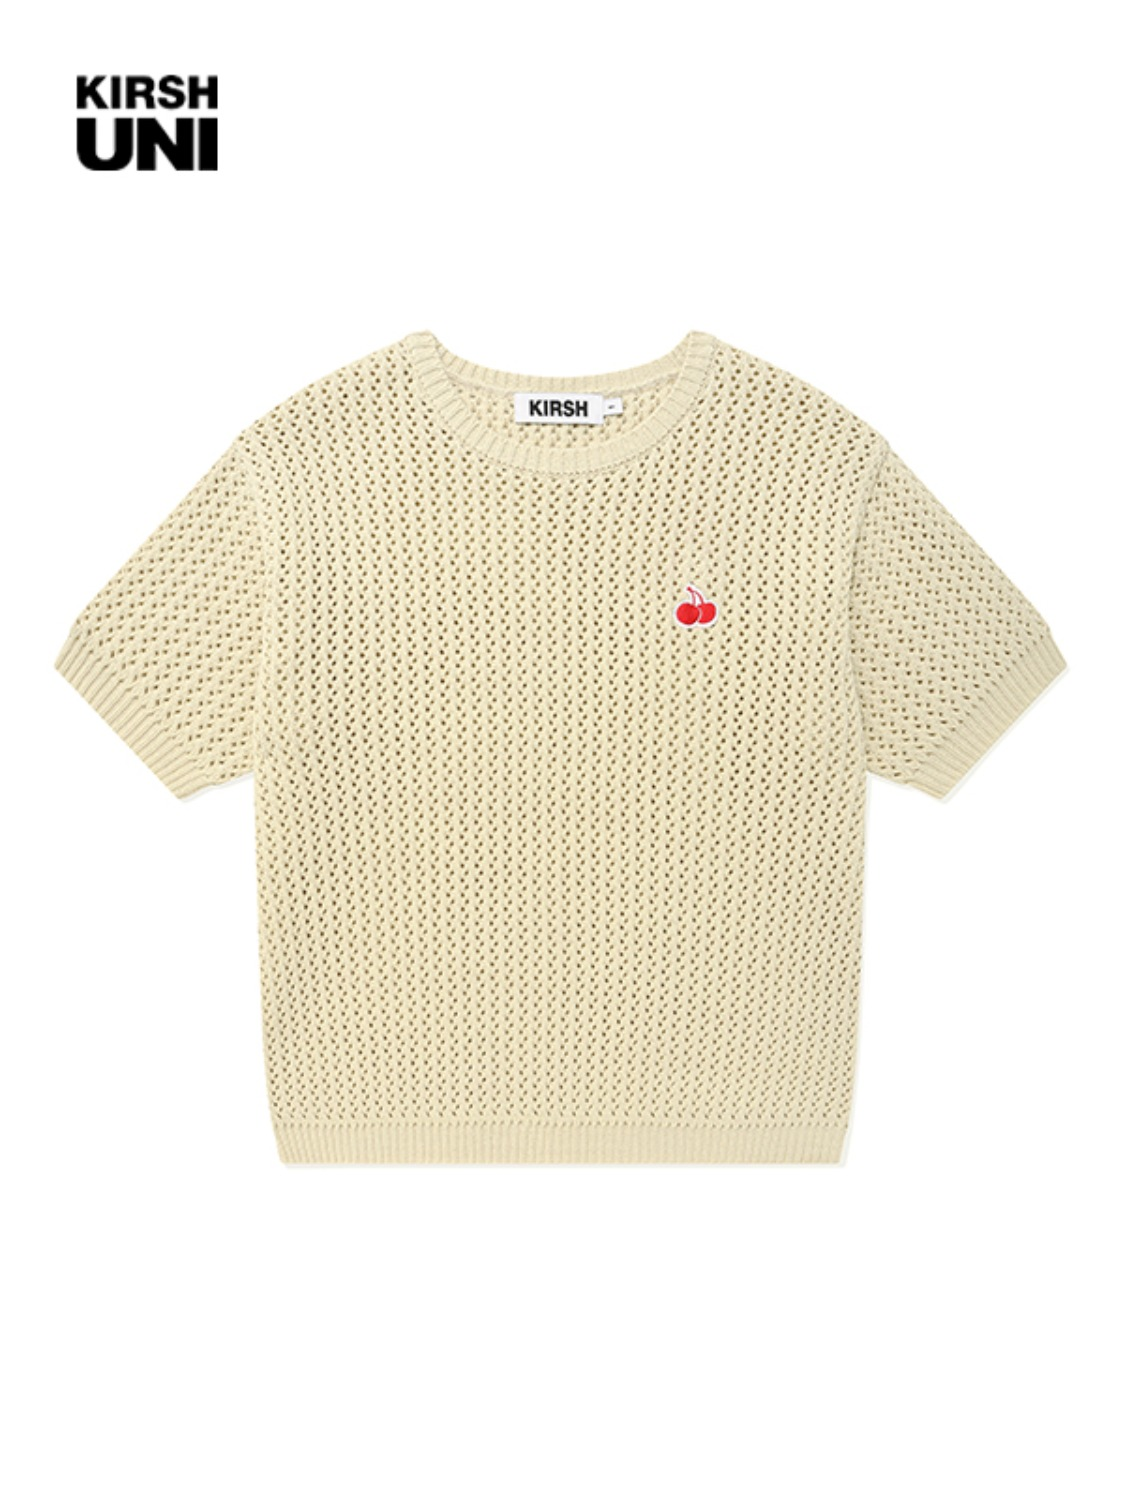 UNI SMALL CHERRY SHORT SLEEVED KNIT KS [BEIGE]